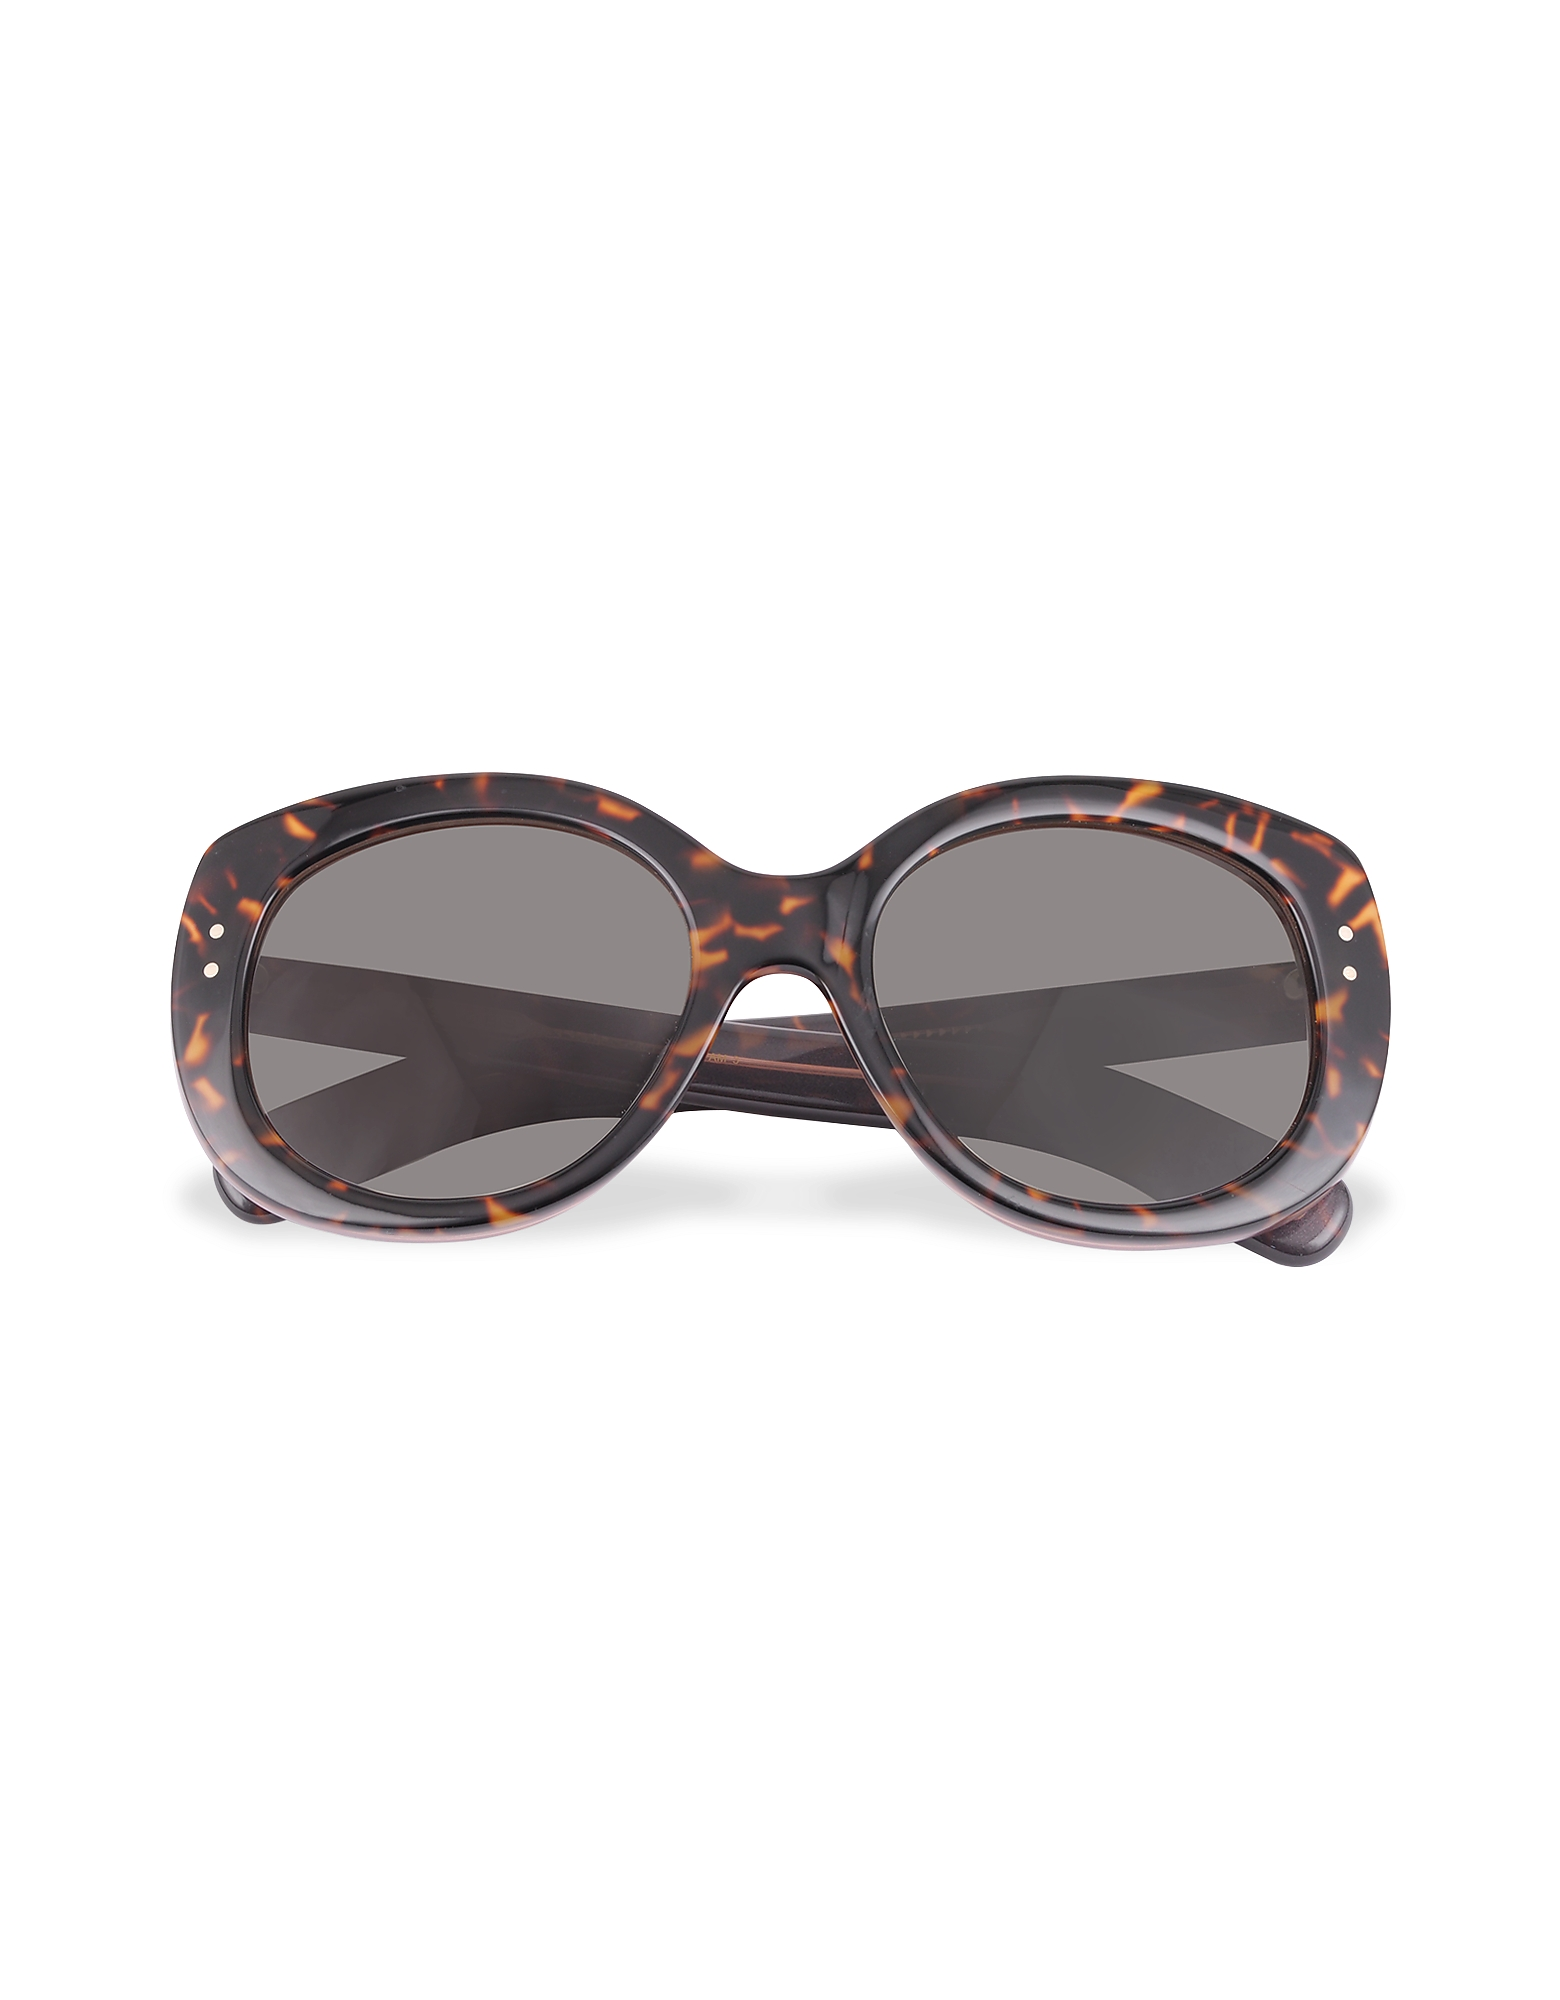 Marc Jacobs Sunglasses, Vintage Inspired Round Frame